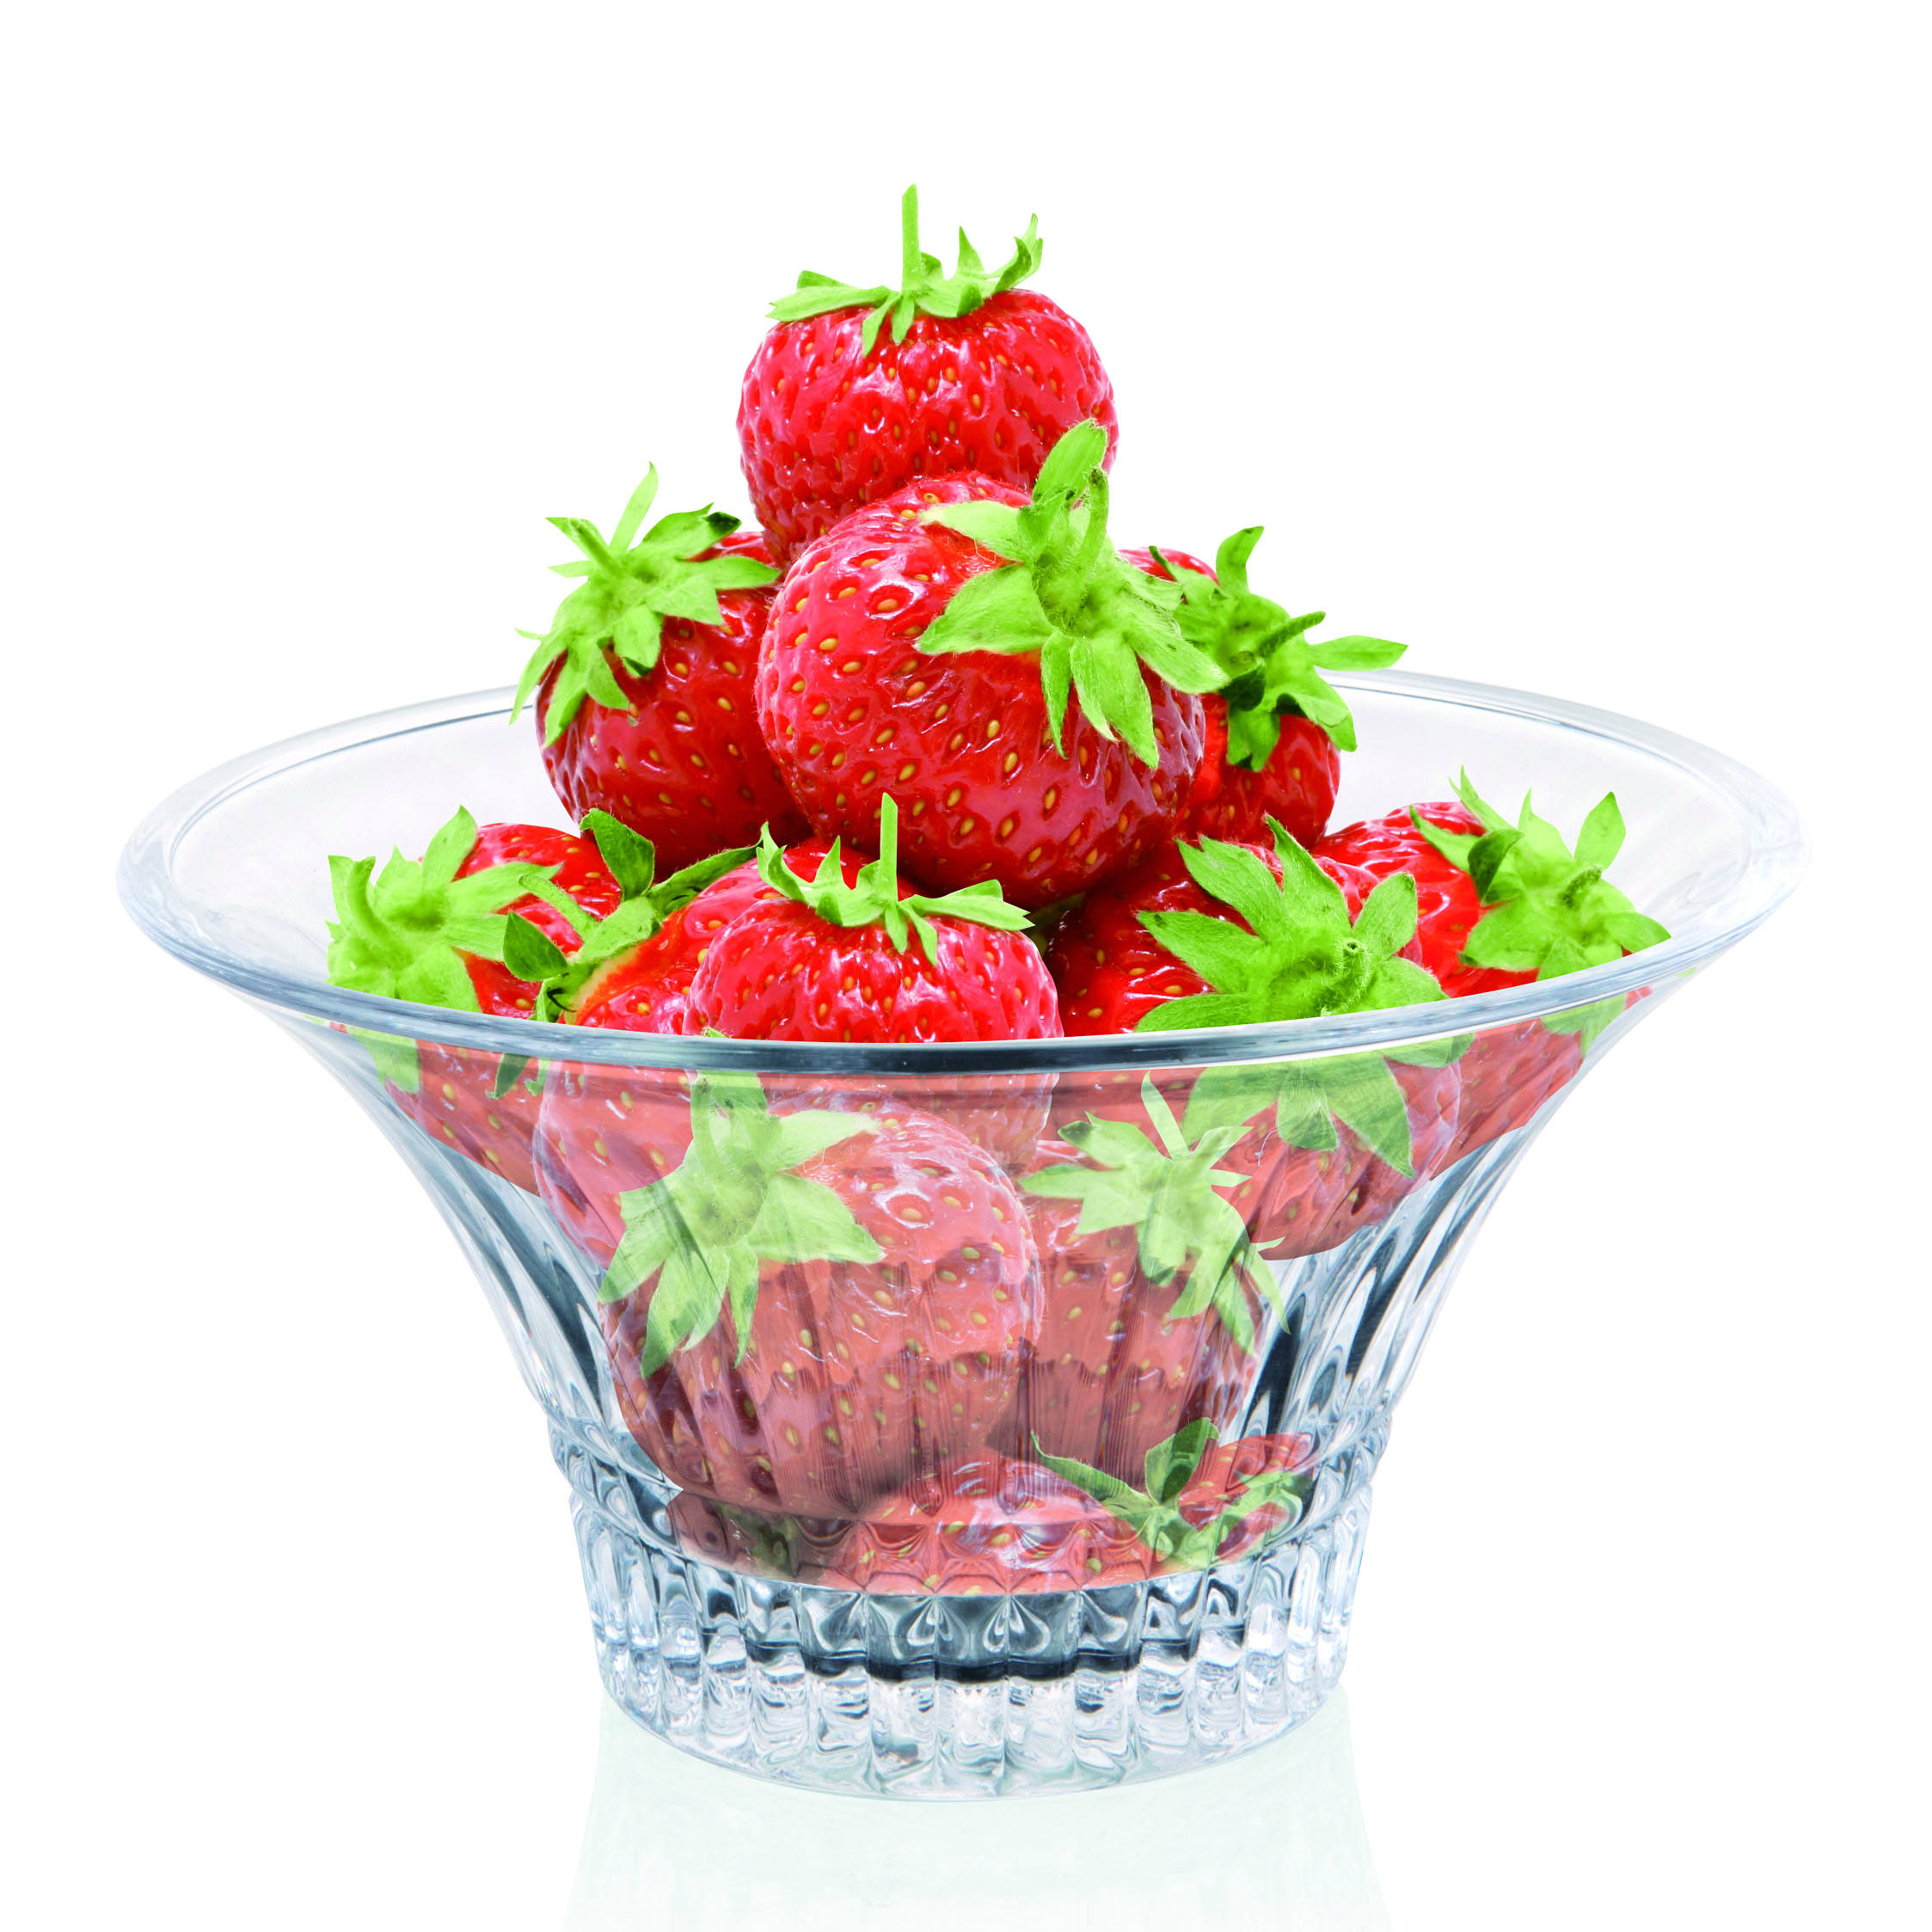 office clear small glass fruit bowl glass 6pcs glass bowl set 4inch mixed order FCL for sale